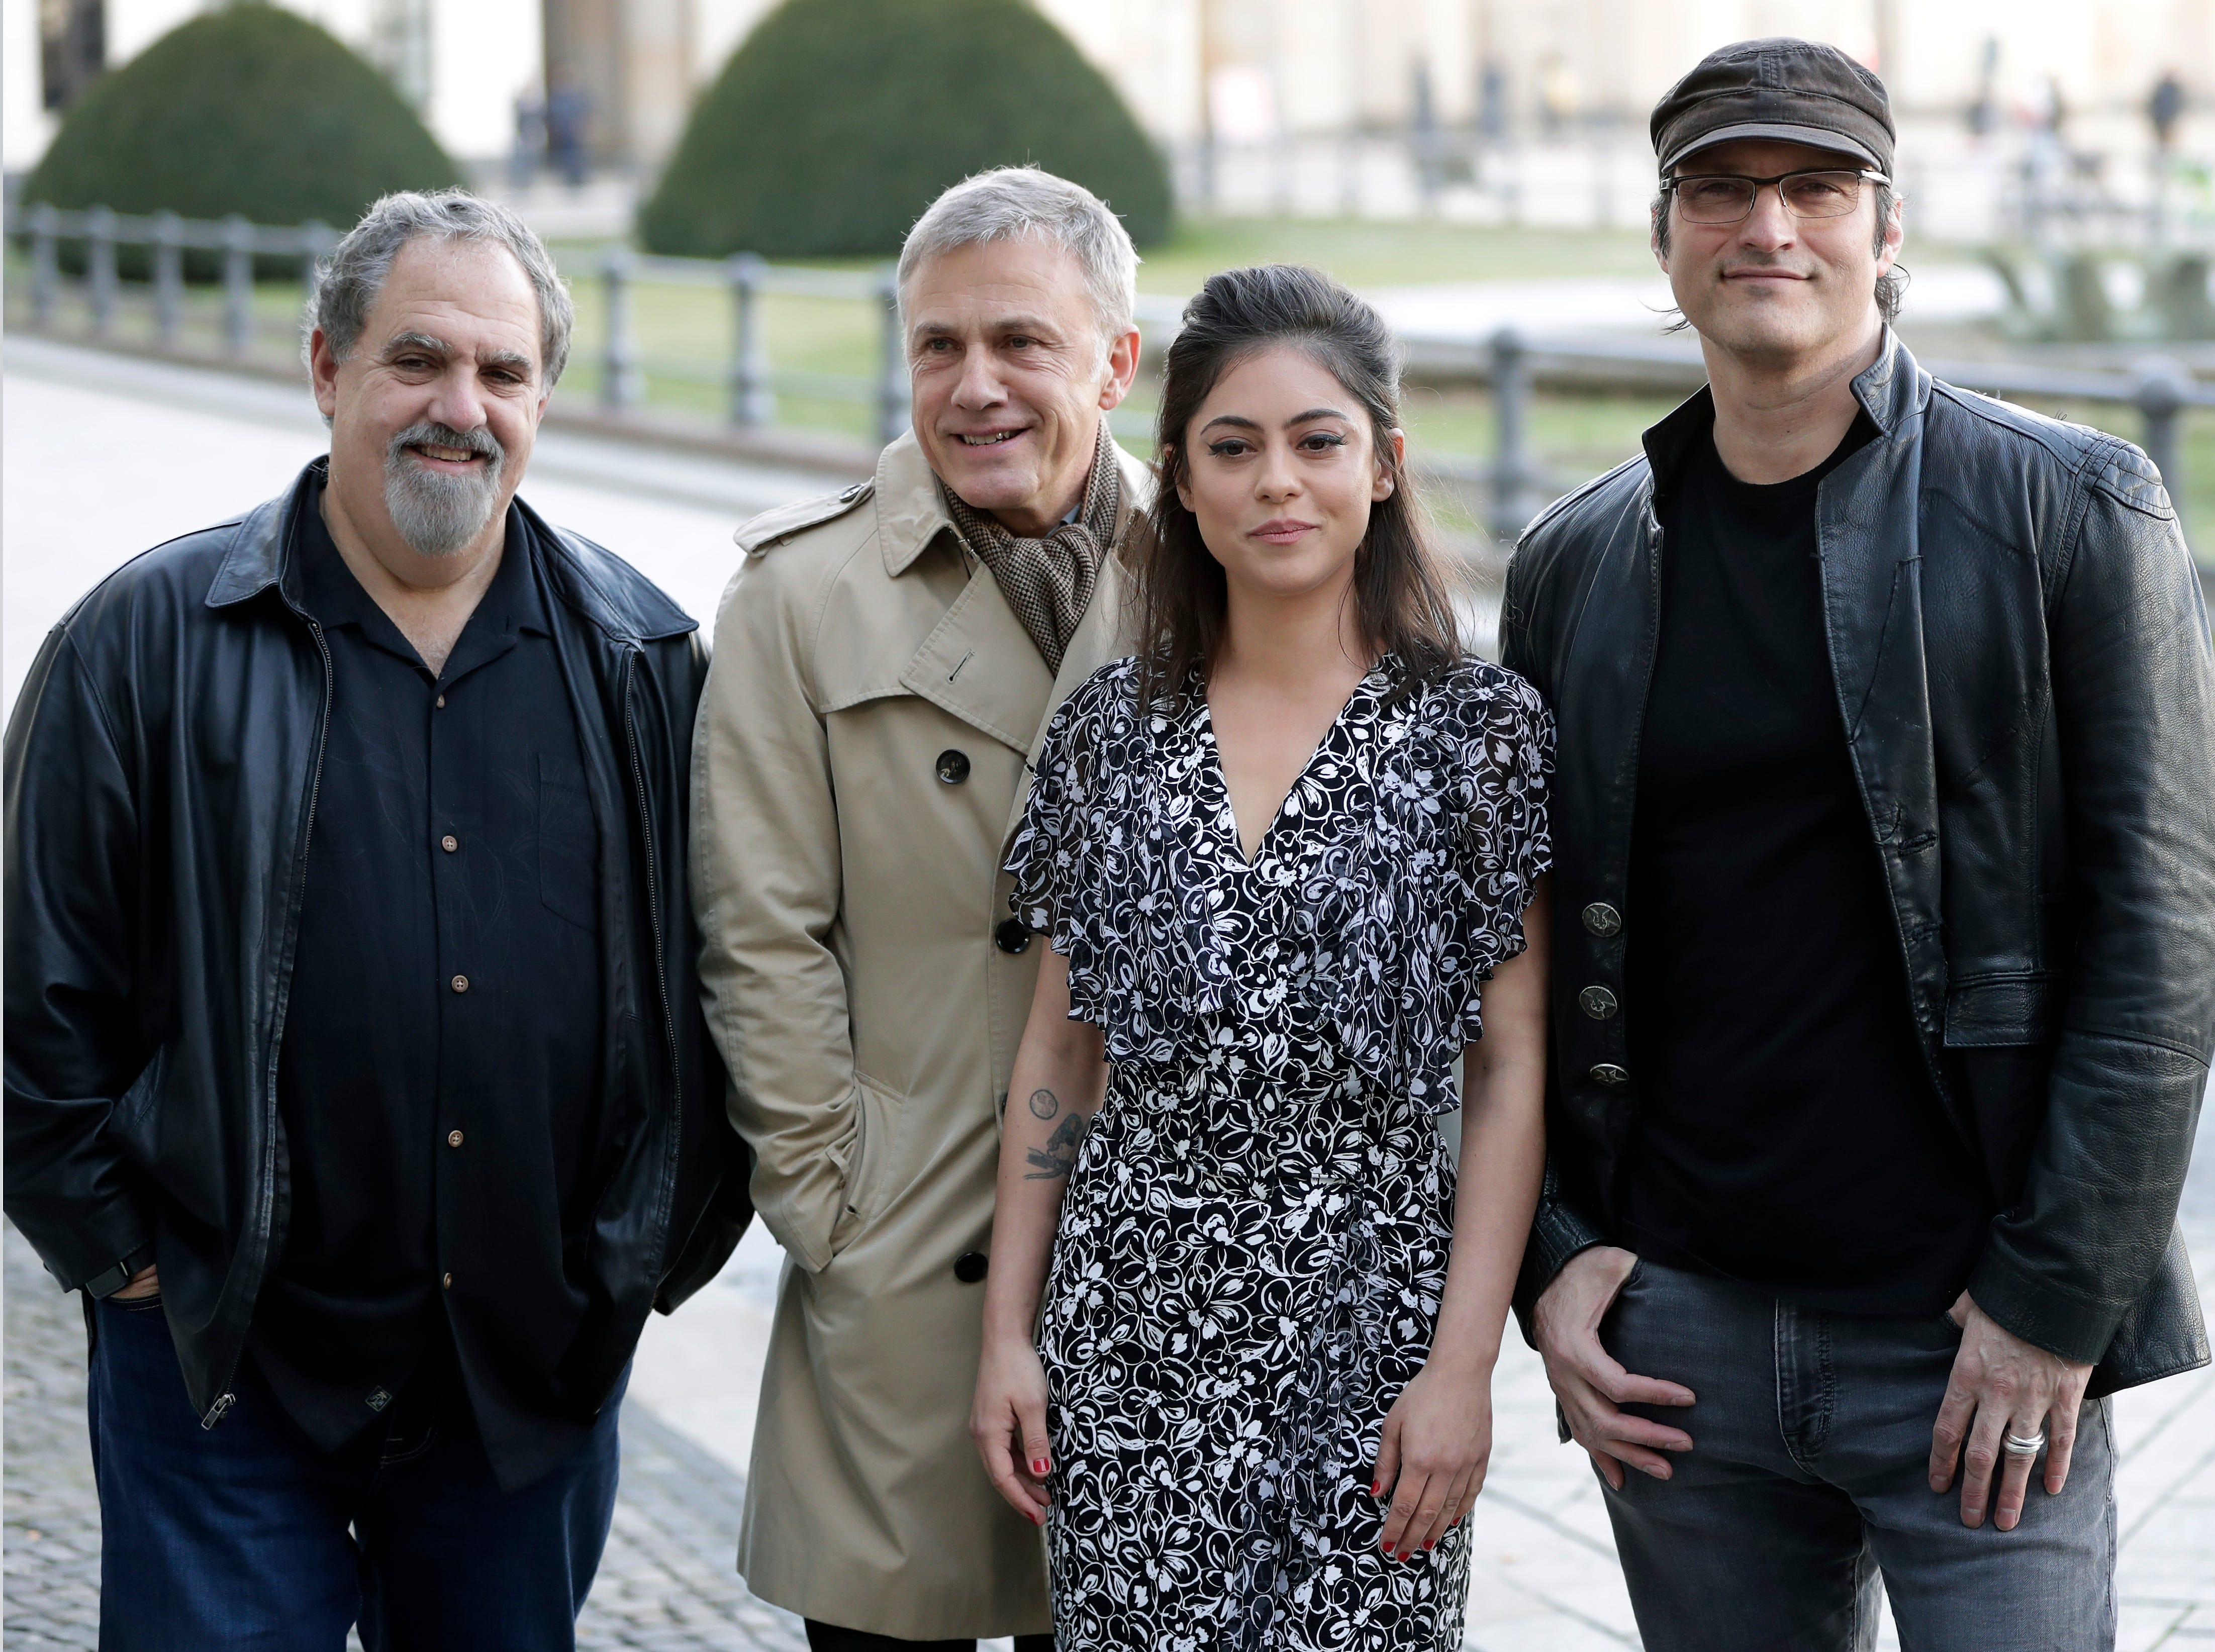 """From left, producer Jon Landau, actor Christoph Walz, actress Rosa Salazar and director Robert Rodriguez pose for photographers during a photo call for the movie """"Alita: Battle Angel"""" in Berlin, Germany, Wednesday, Jan. 30, 2019."""